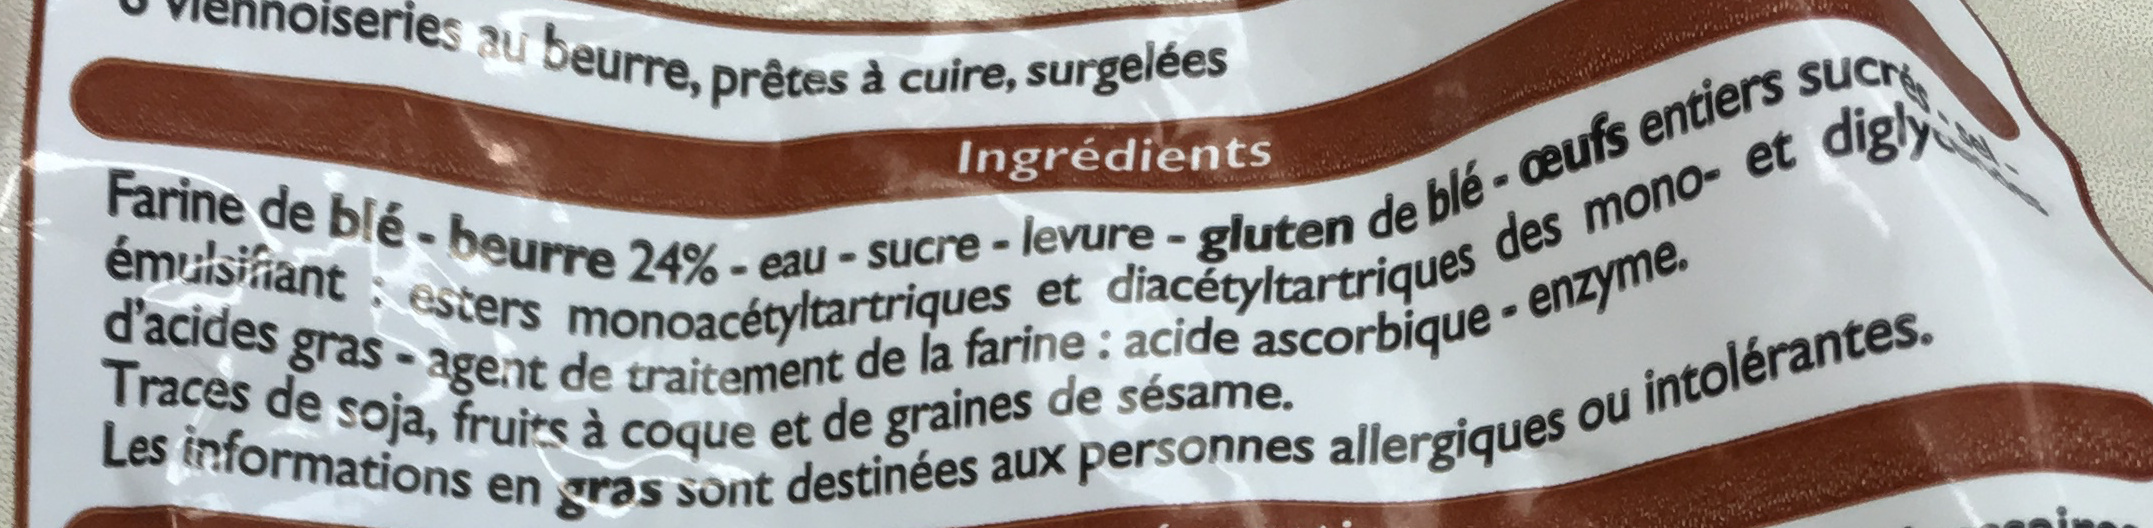 6 Croissants Pur Beurre - Ingredients - fr